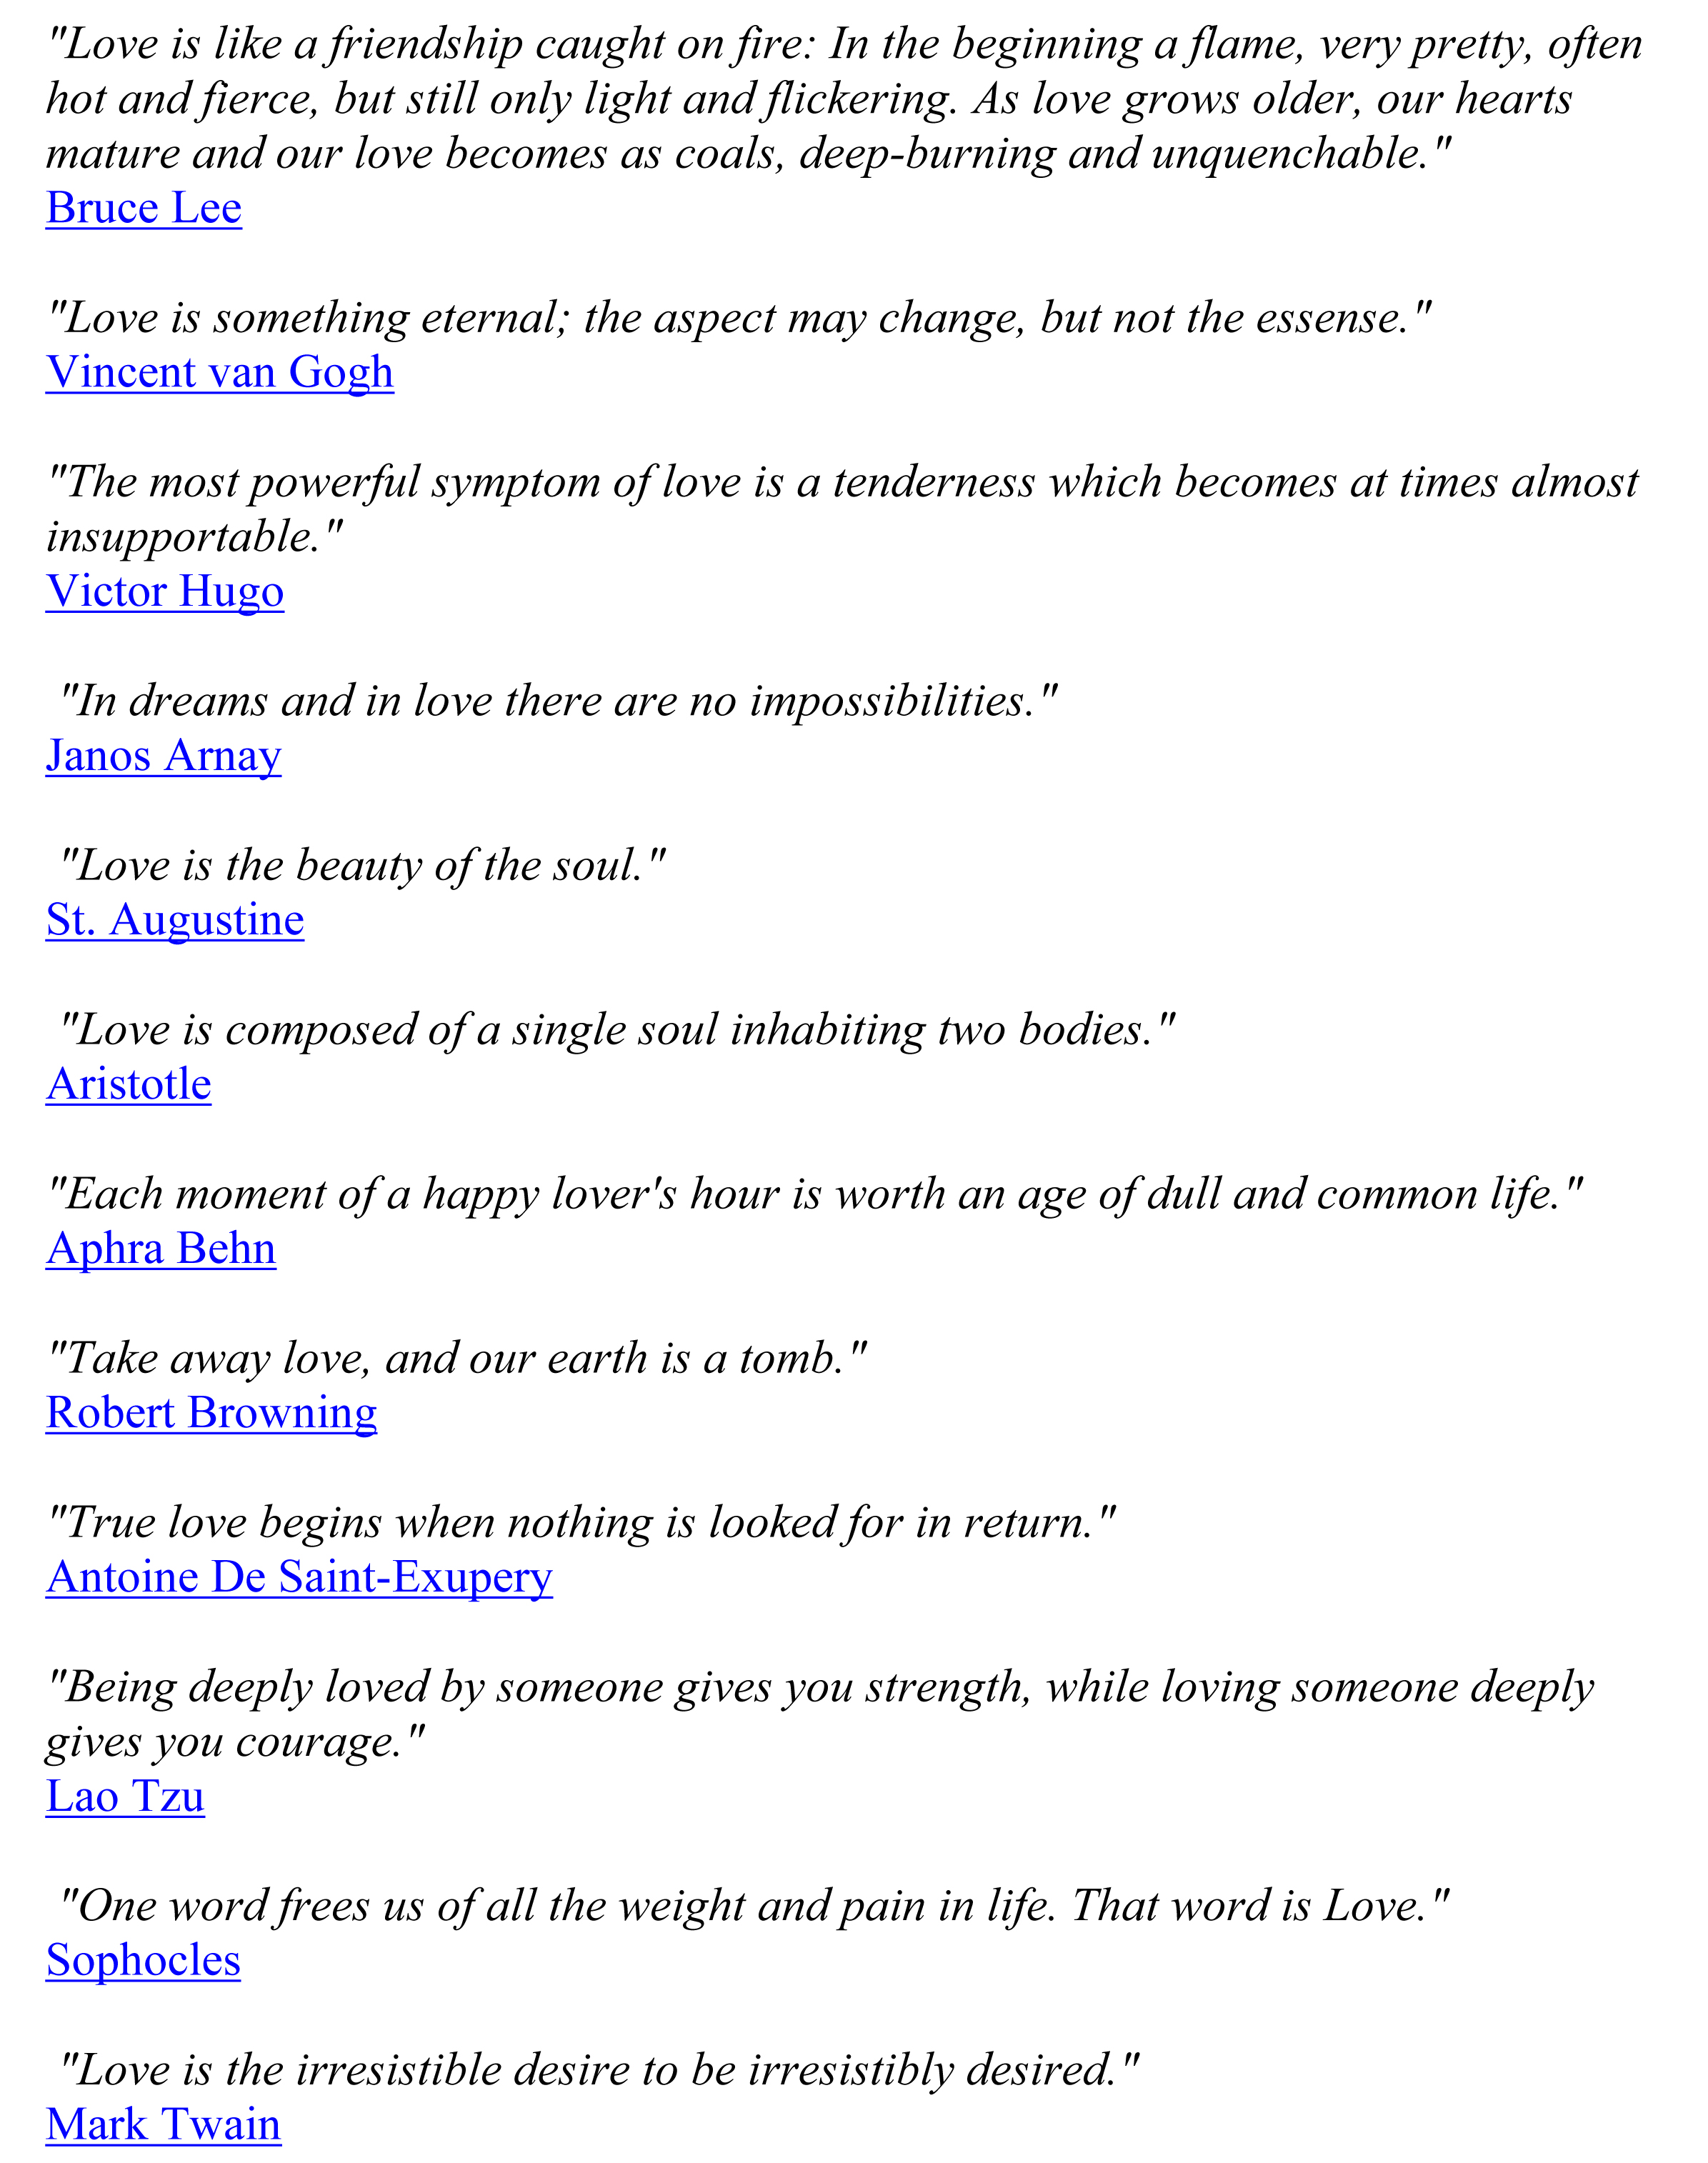 005 Essays On Love Quotations For Essay Awesome At First Sight Arranged Marriage And Full